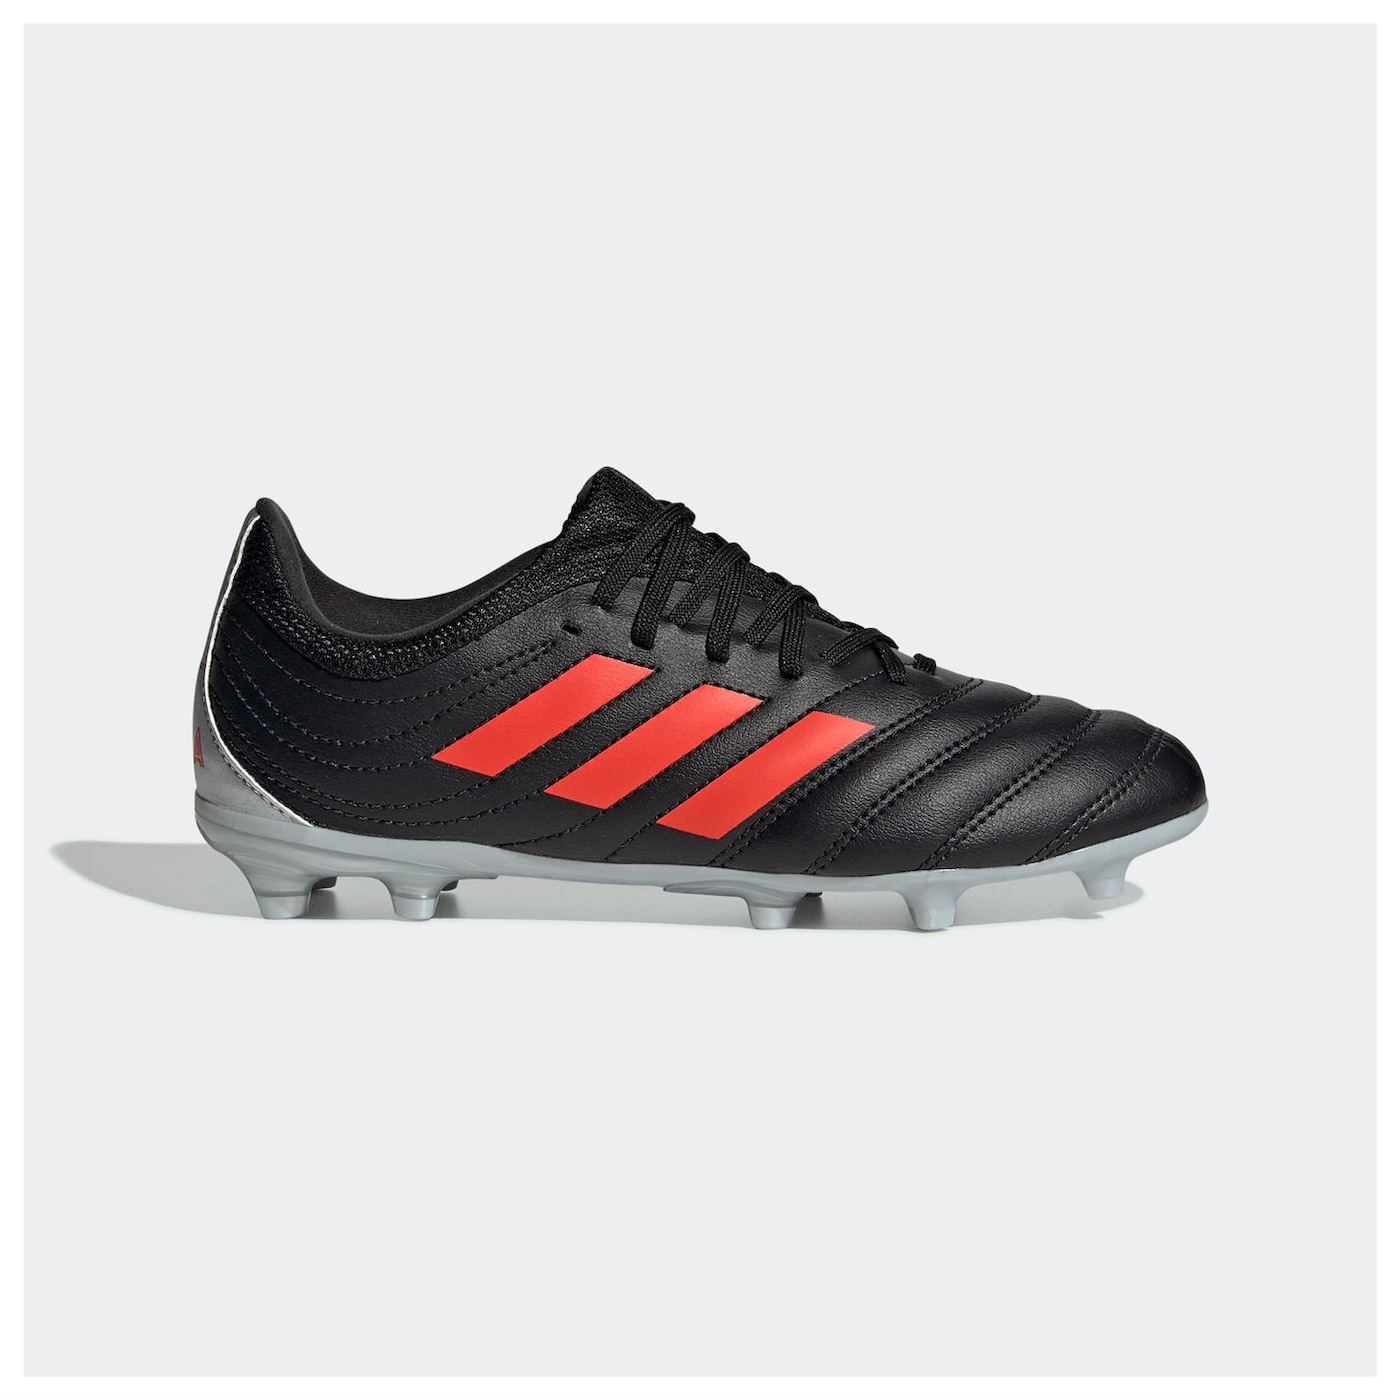 Adidas Copa 19.3 Junior FG Football Boots